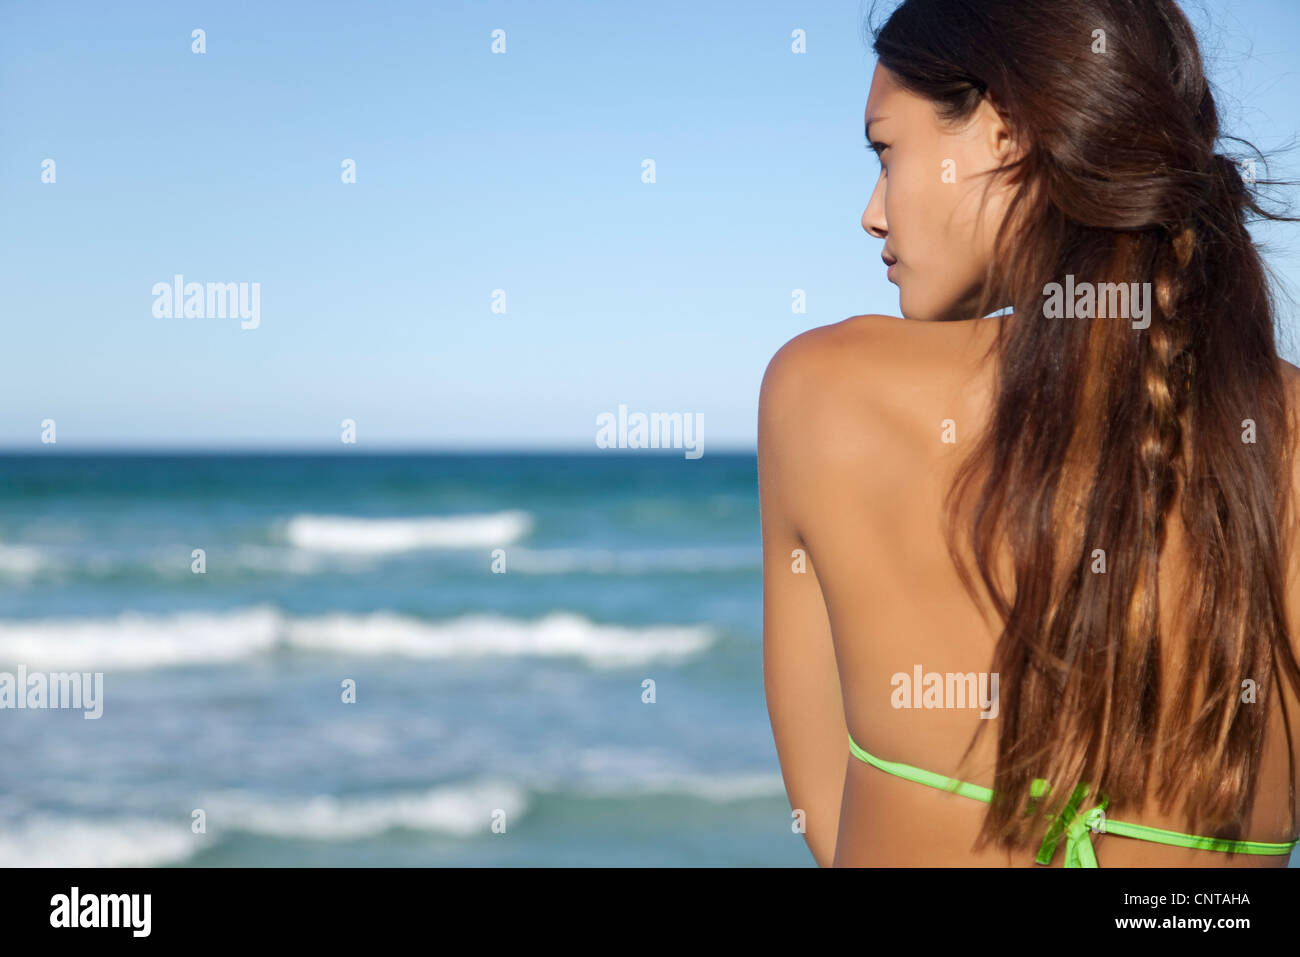 Young woman looking at ocean view, rear view - Stock Image